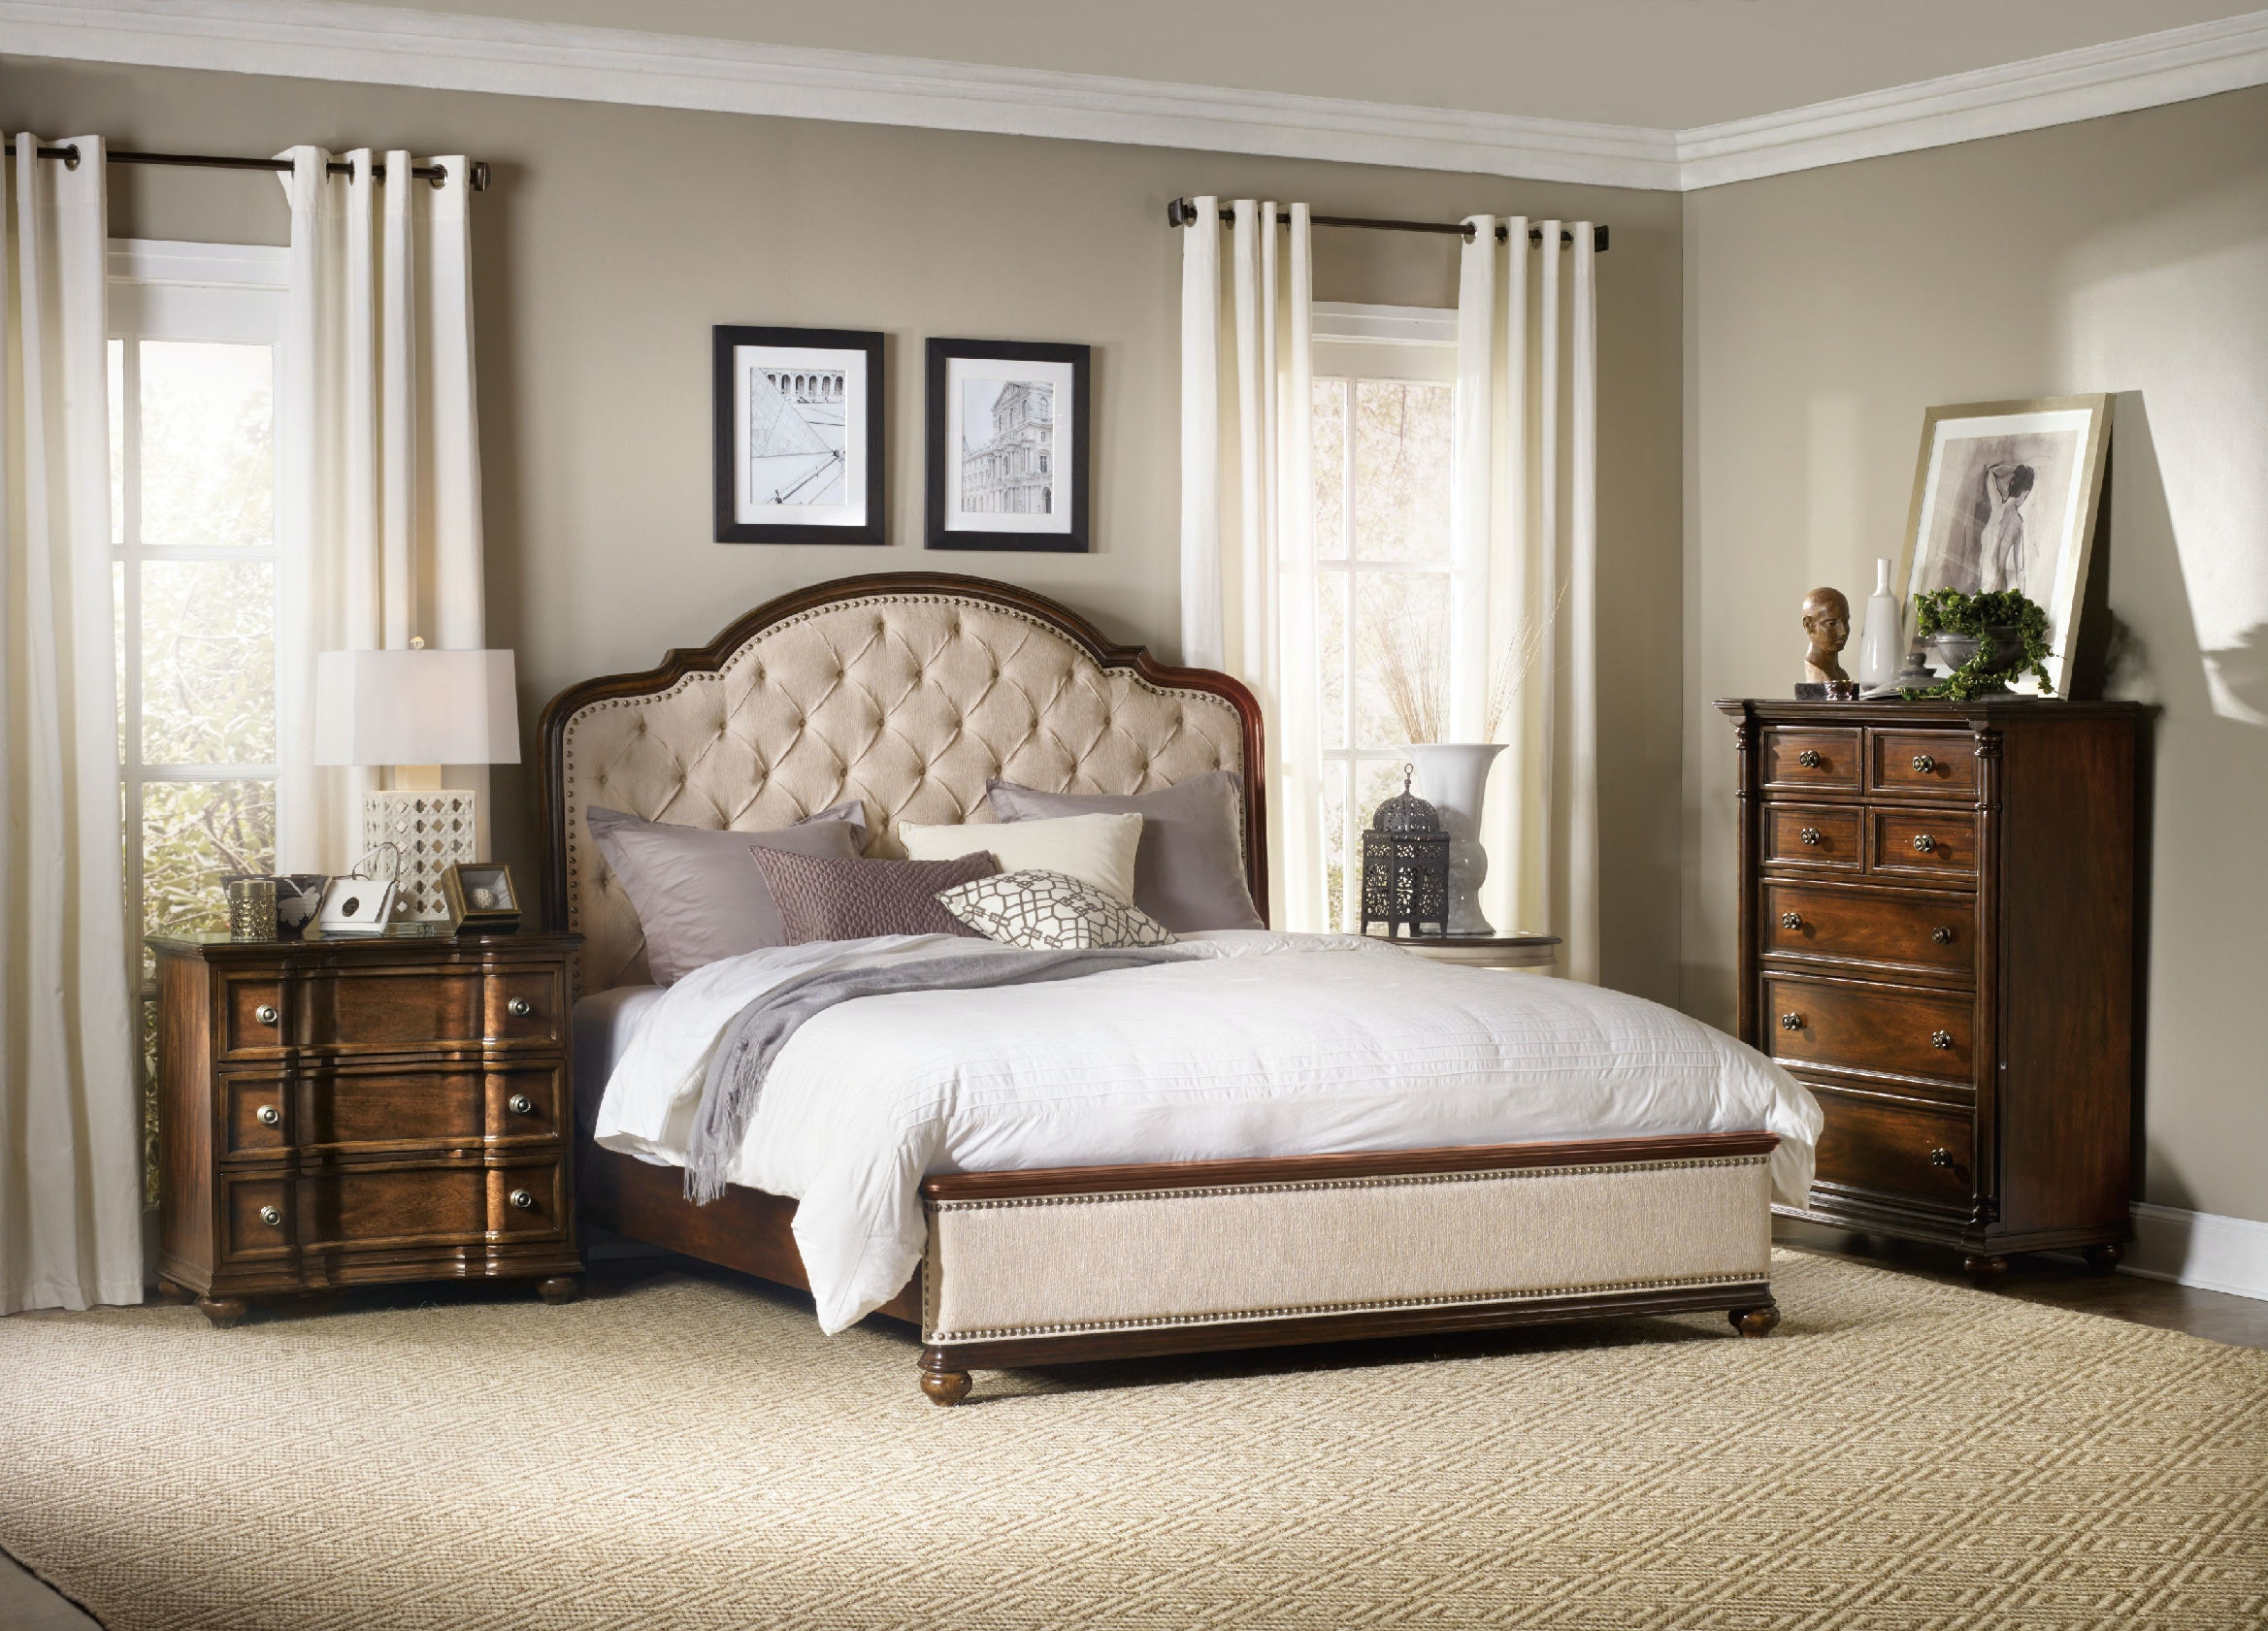 Hooker Furniture Leesburg Queen Upholstered Bed With Wood Rails 5381 90950